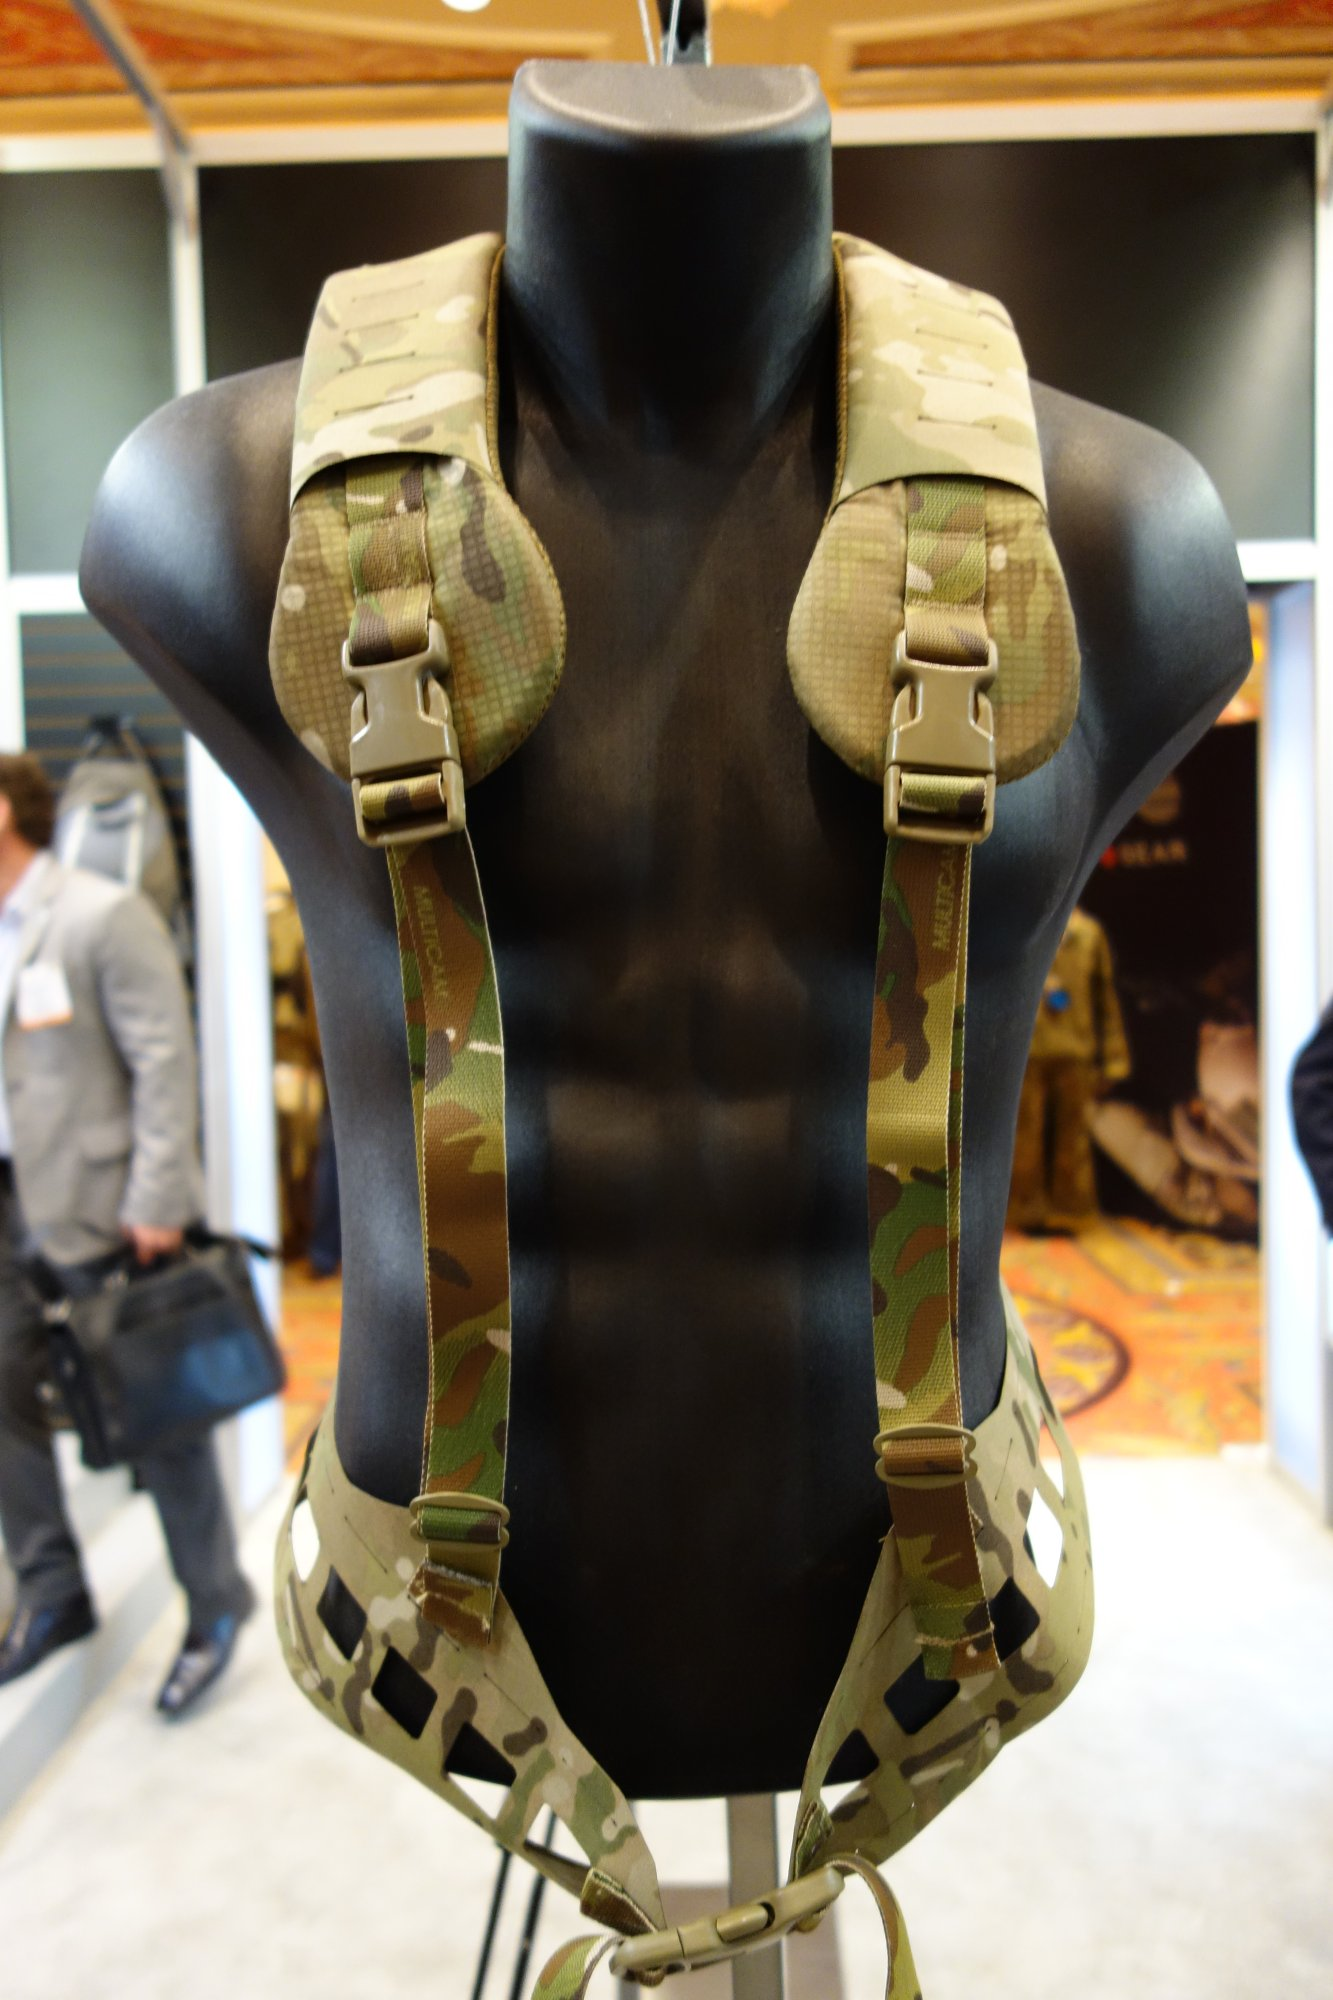 Blue Force Gear BFG BELTminus Ultra Lightweight Low Profile Low Visibility Battle Belt Chest Rig with MOLLEminus and ULTRAcomp Crye MultiCam Camo Pattern at SHOT Show 2013 David Crane DefenseReview.com DR 2 Blue Force Gear (BFG) PLATEminus Ultra Lightweight Low Profile/Low Visibility Tactical Armor Plate Carrier and BELTminus and SPLITminus Battle Belt/Chest Rig/Harness Systems with MOLLEminus Cutaway MOLLE System and ULTRAcomp Laminate: Tactical Body Armor Goes Super Minimalist